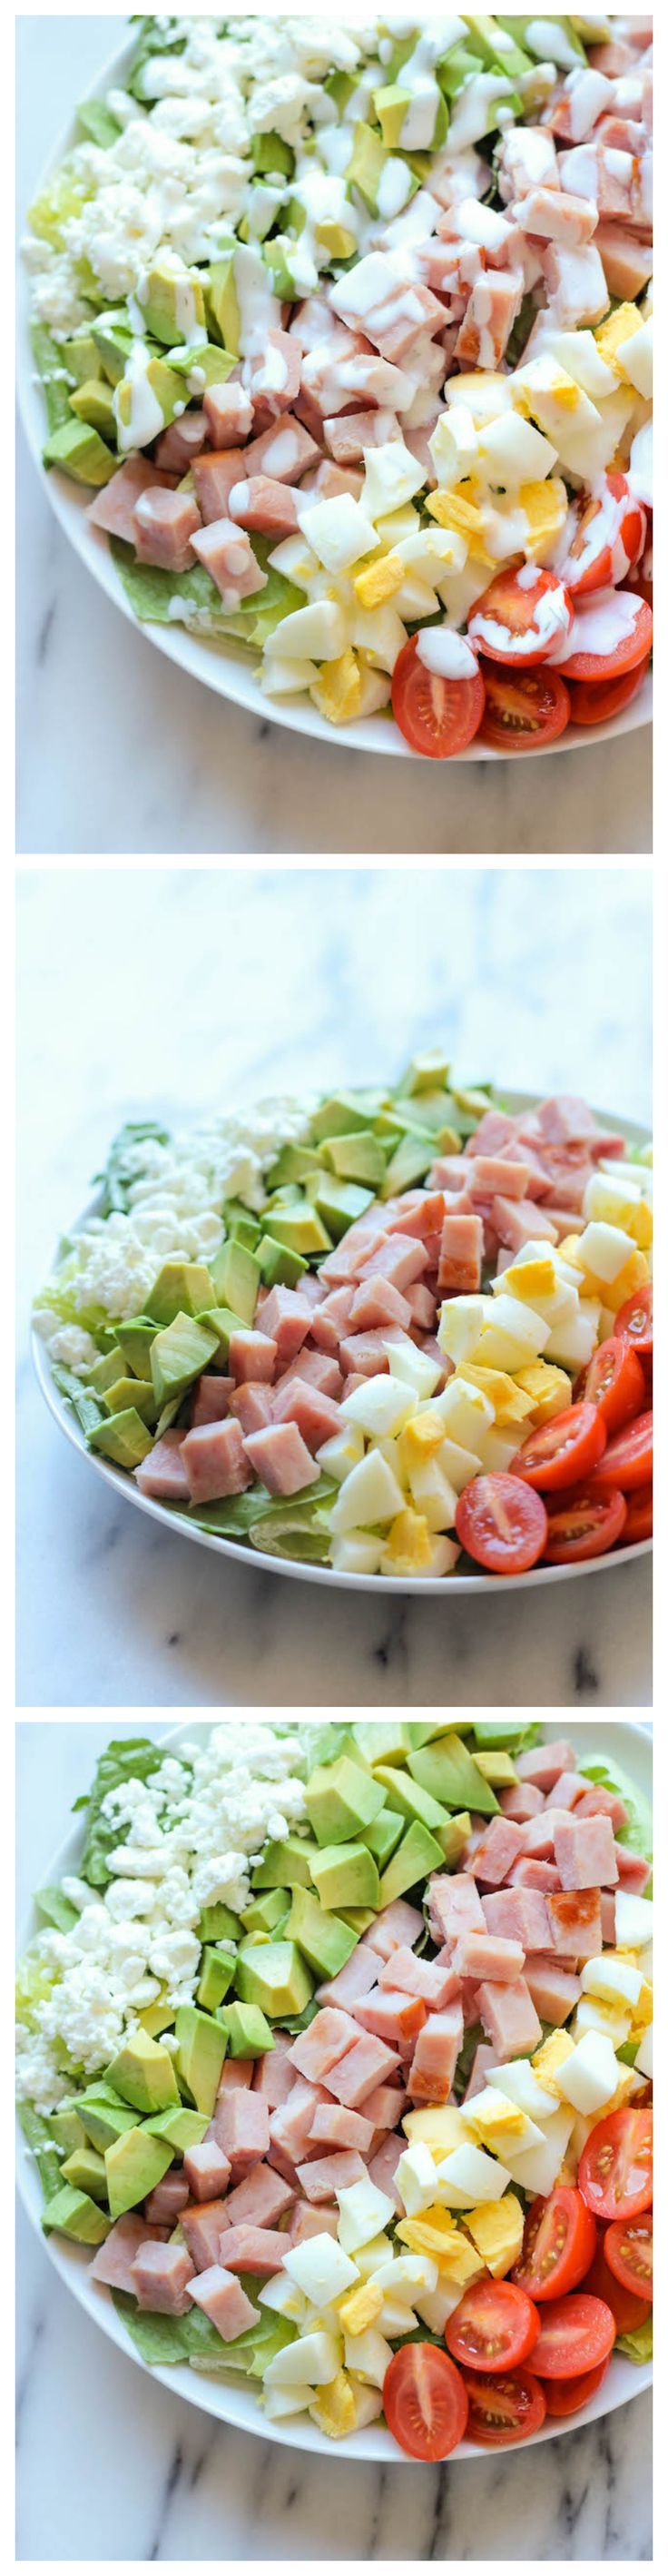 Ham Cobb Salad - Use up your leftover ham in this glorious cobb salad with a healthy Greek yogurt ranch dressing! It's the perfect post-Easter detox!